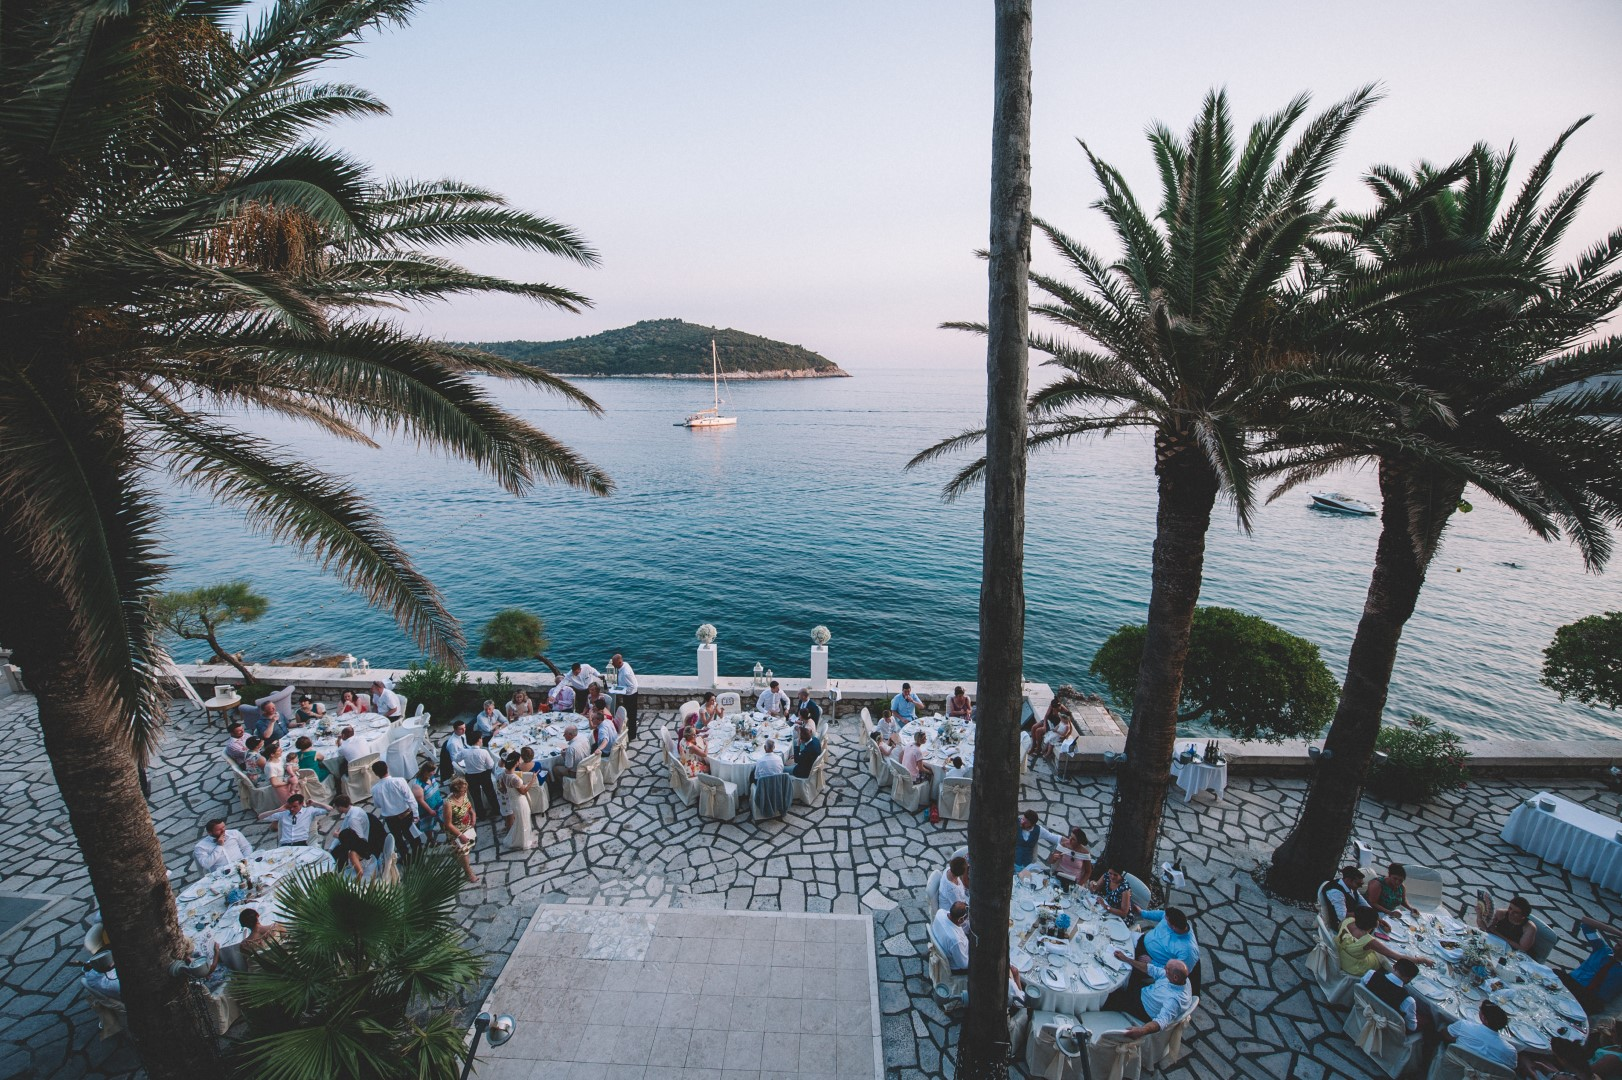 Dubrovnik terrace wedding, in the background is Lokrum island and we can see a wedding reception set up among the palm trees.